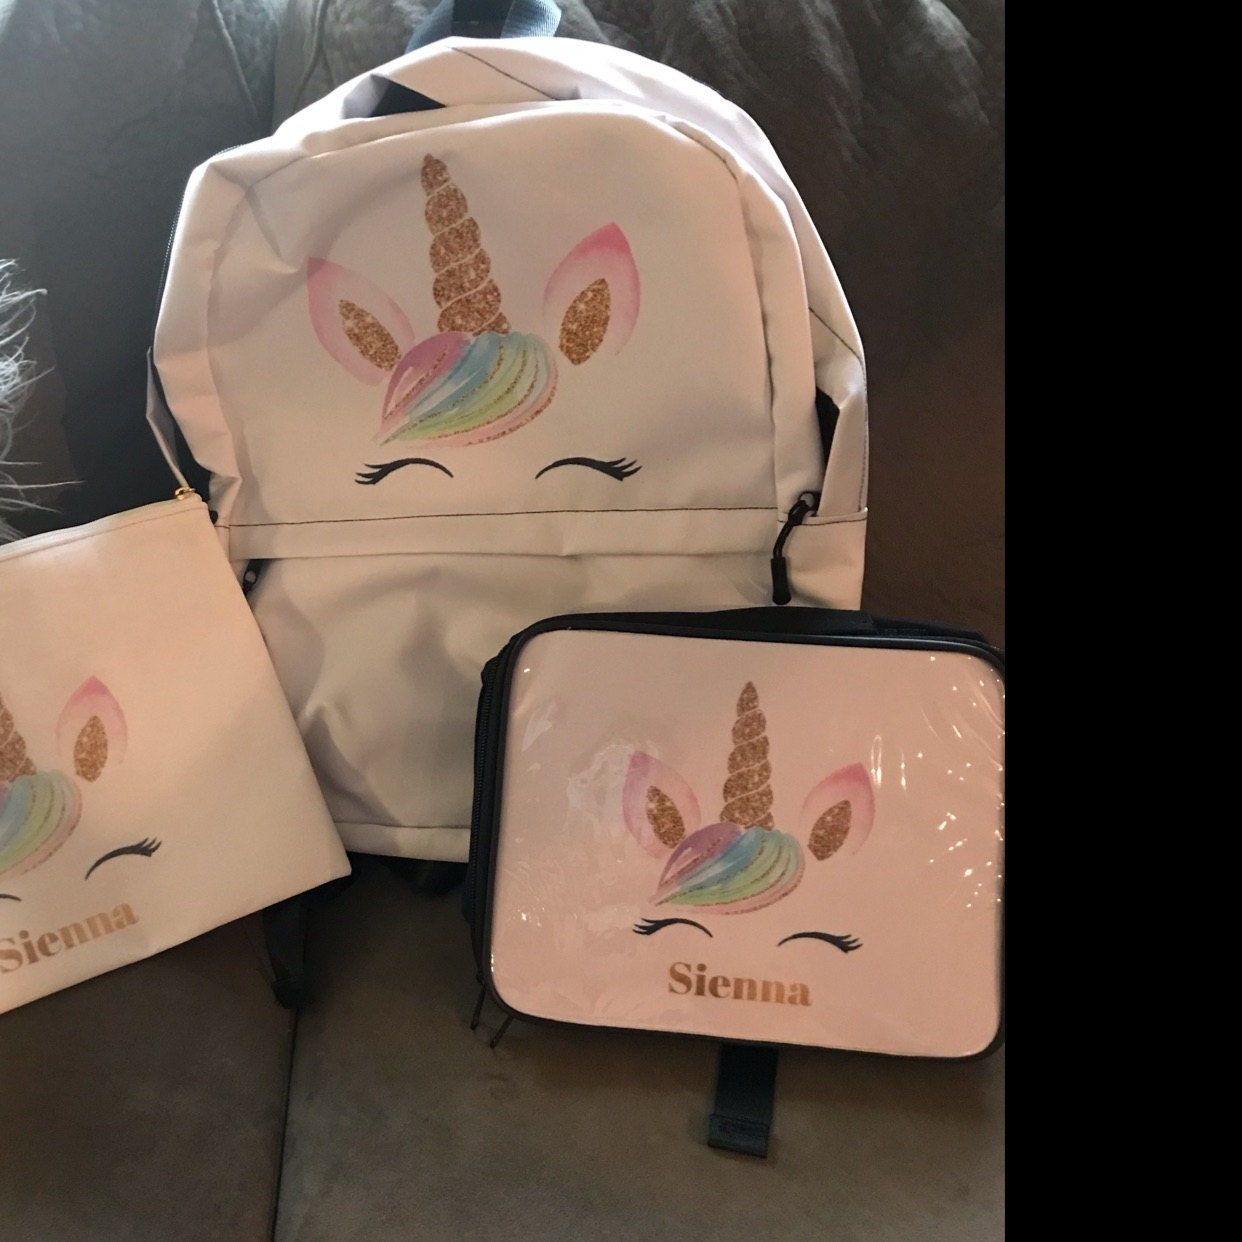 Courtnie Rusignola added a photo of their purchase